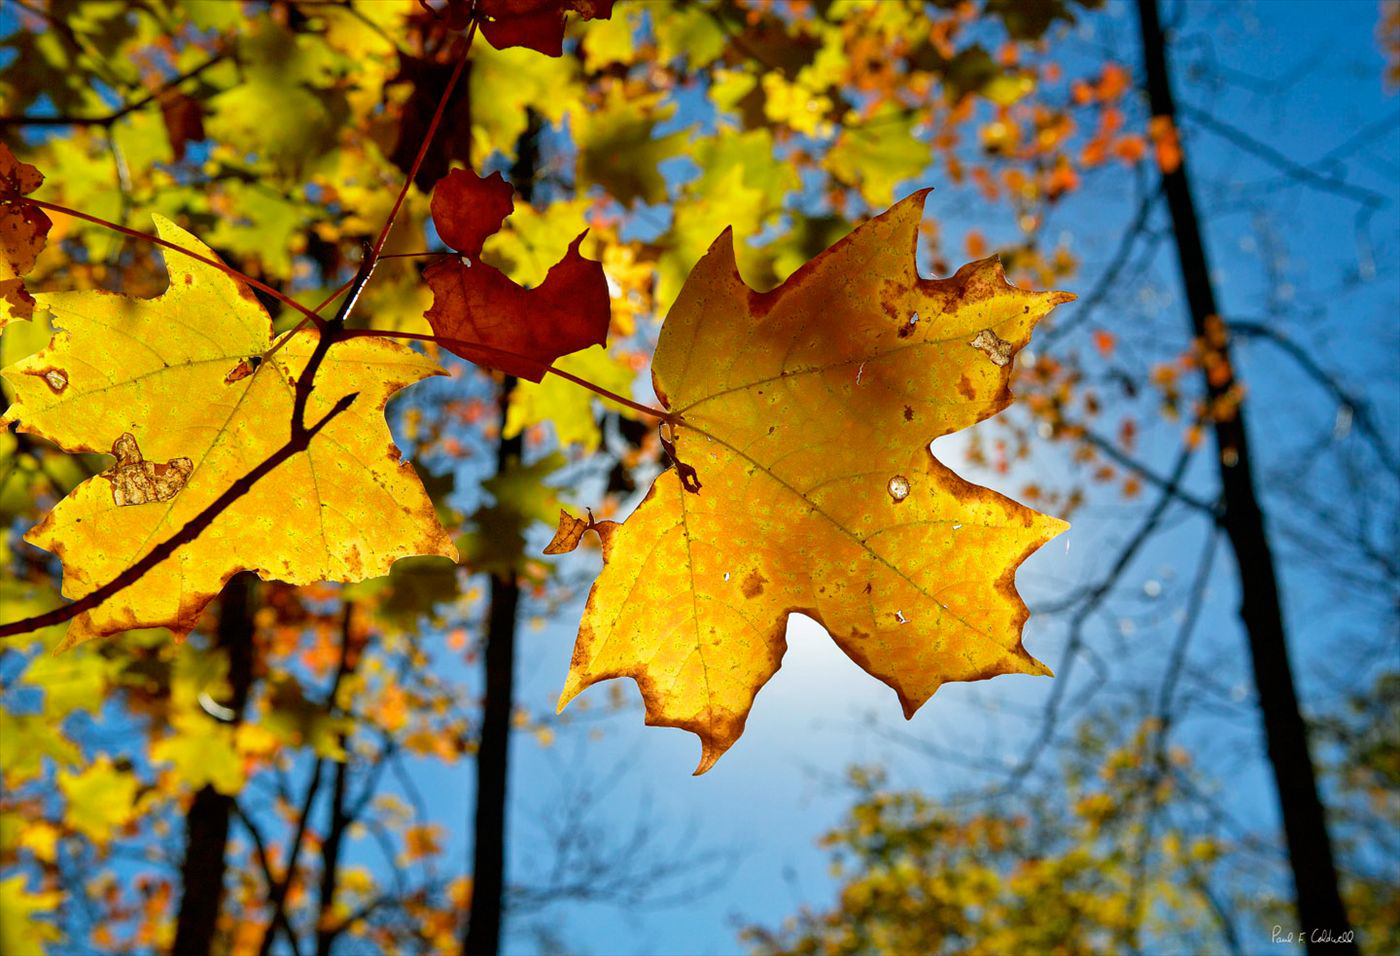 Maple leaf in the sun, Cossatot River area Ouachita Mountains Arkansas